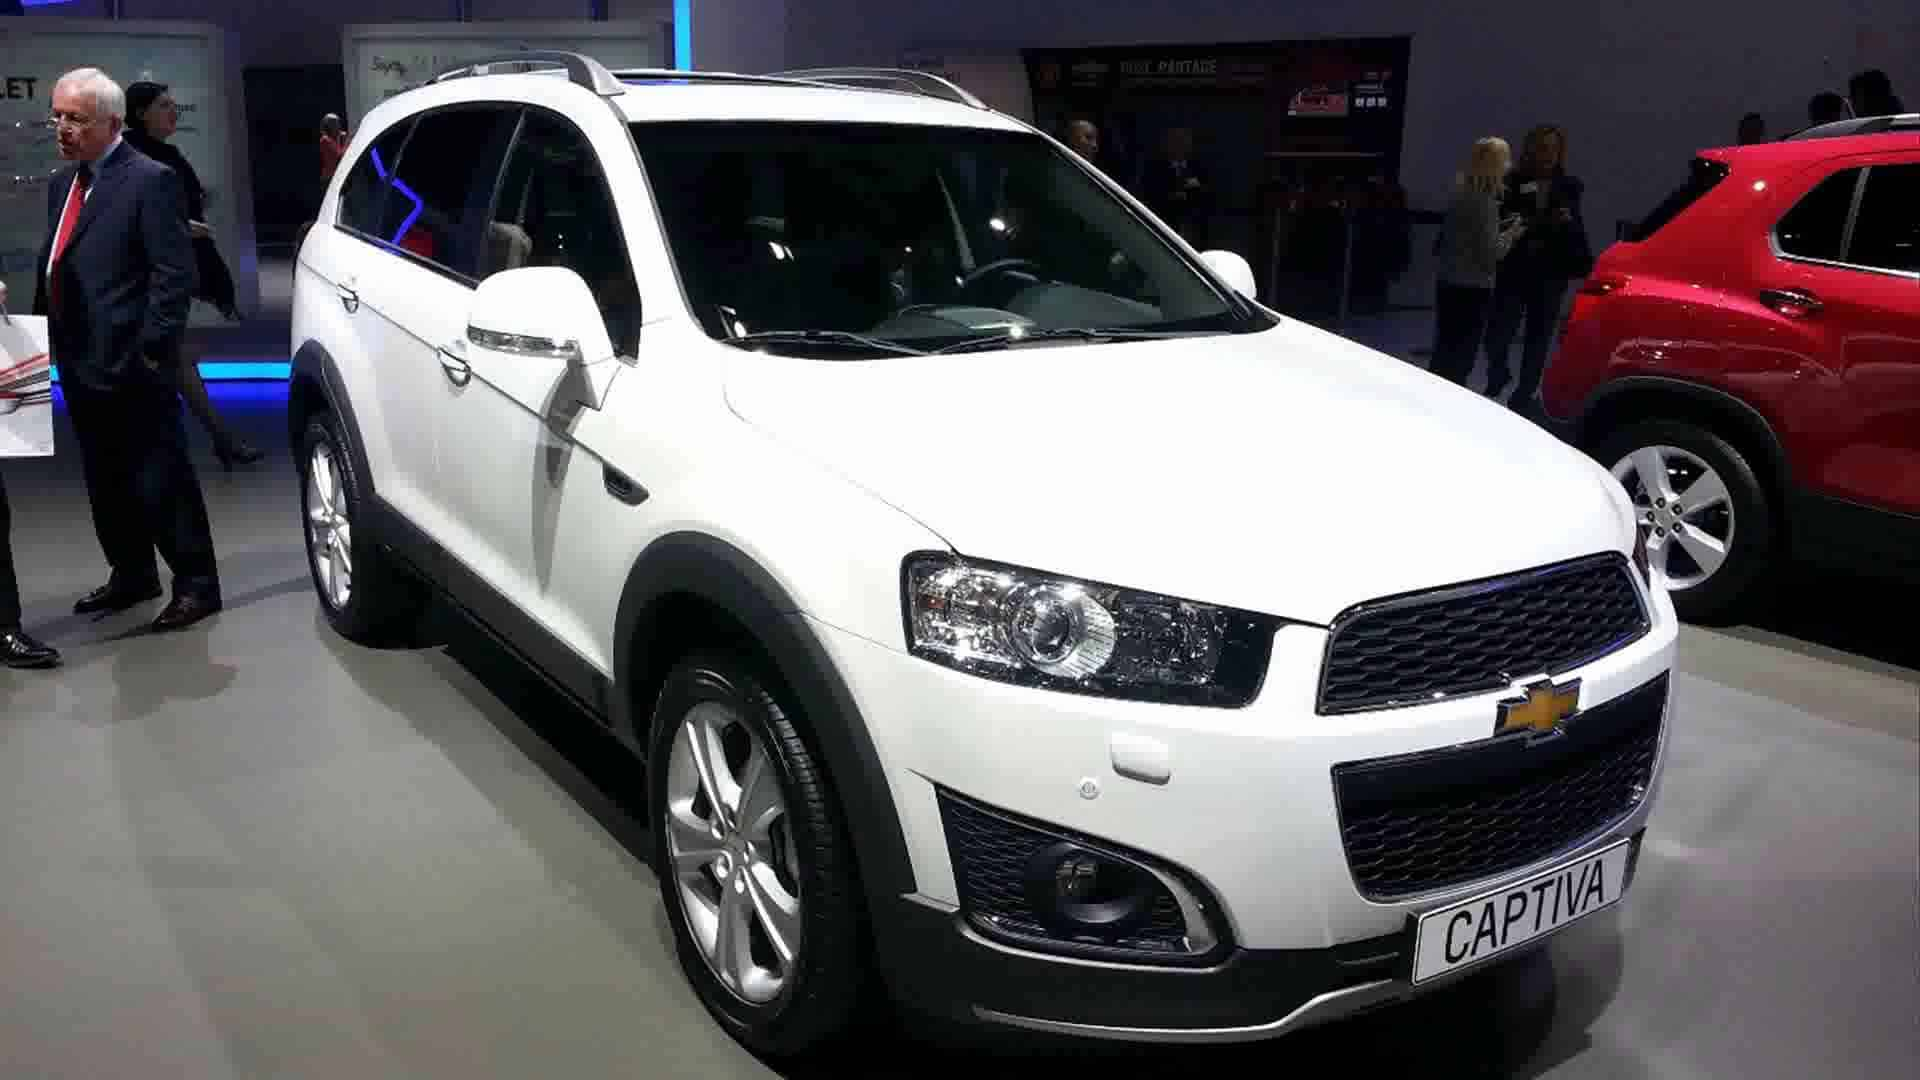 The Chevrolet Captiva is the worst Chevy SUV to buy.